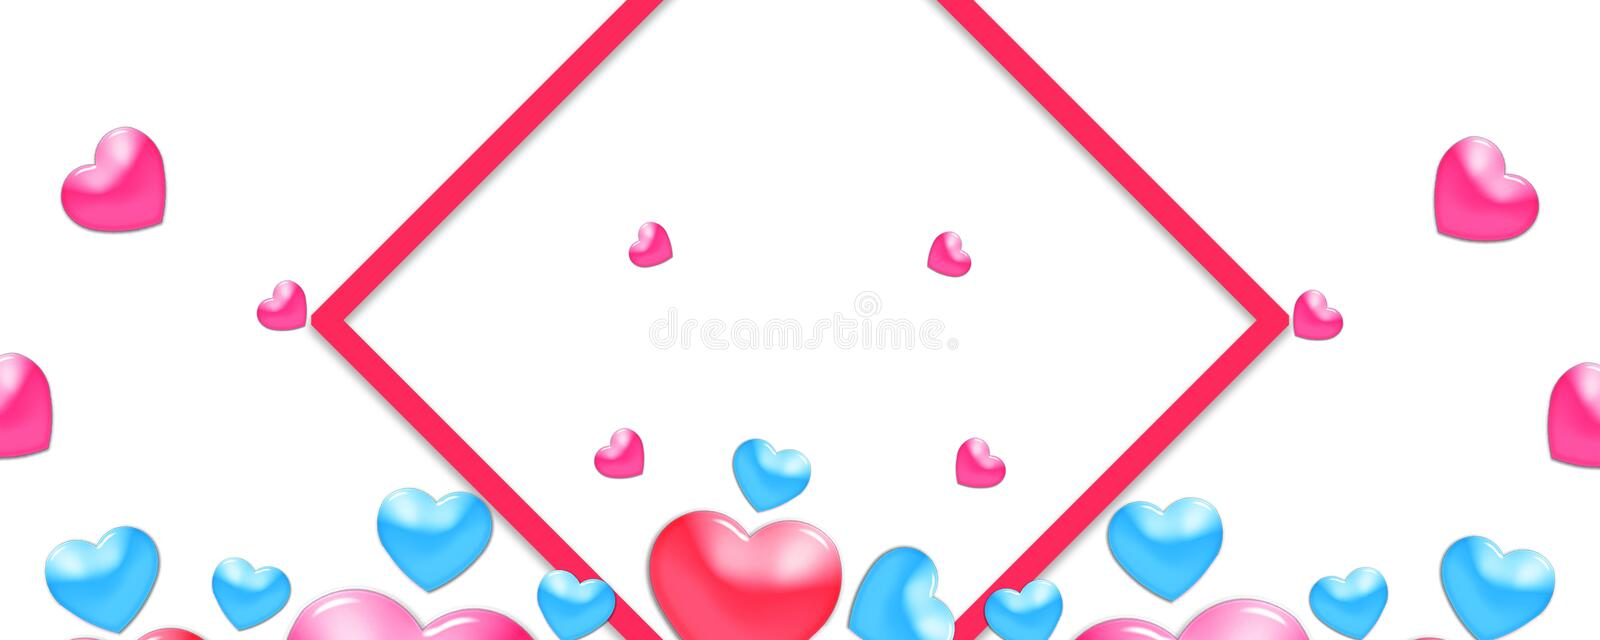 Valentines design, colorful hearts on white background with border and copy space. Valentine's Day royalty free illustration